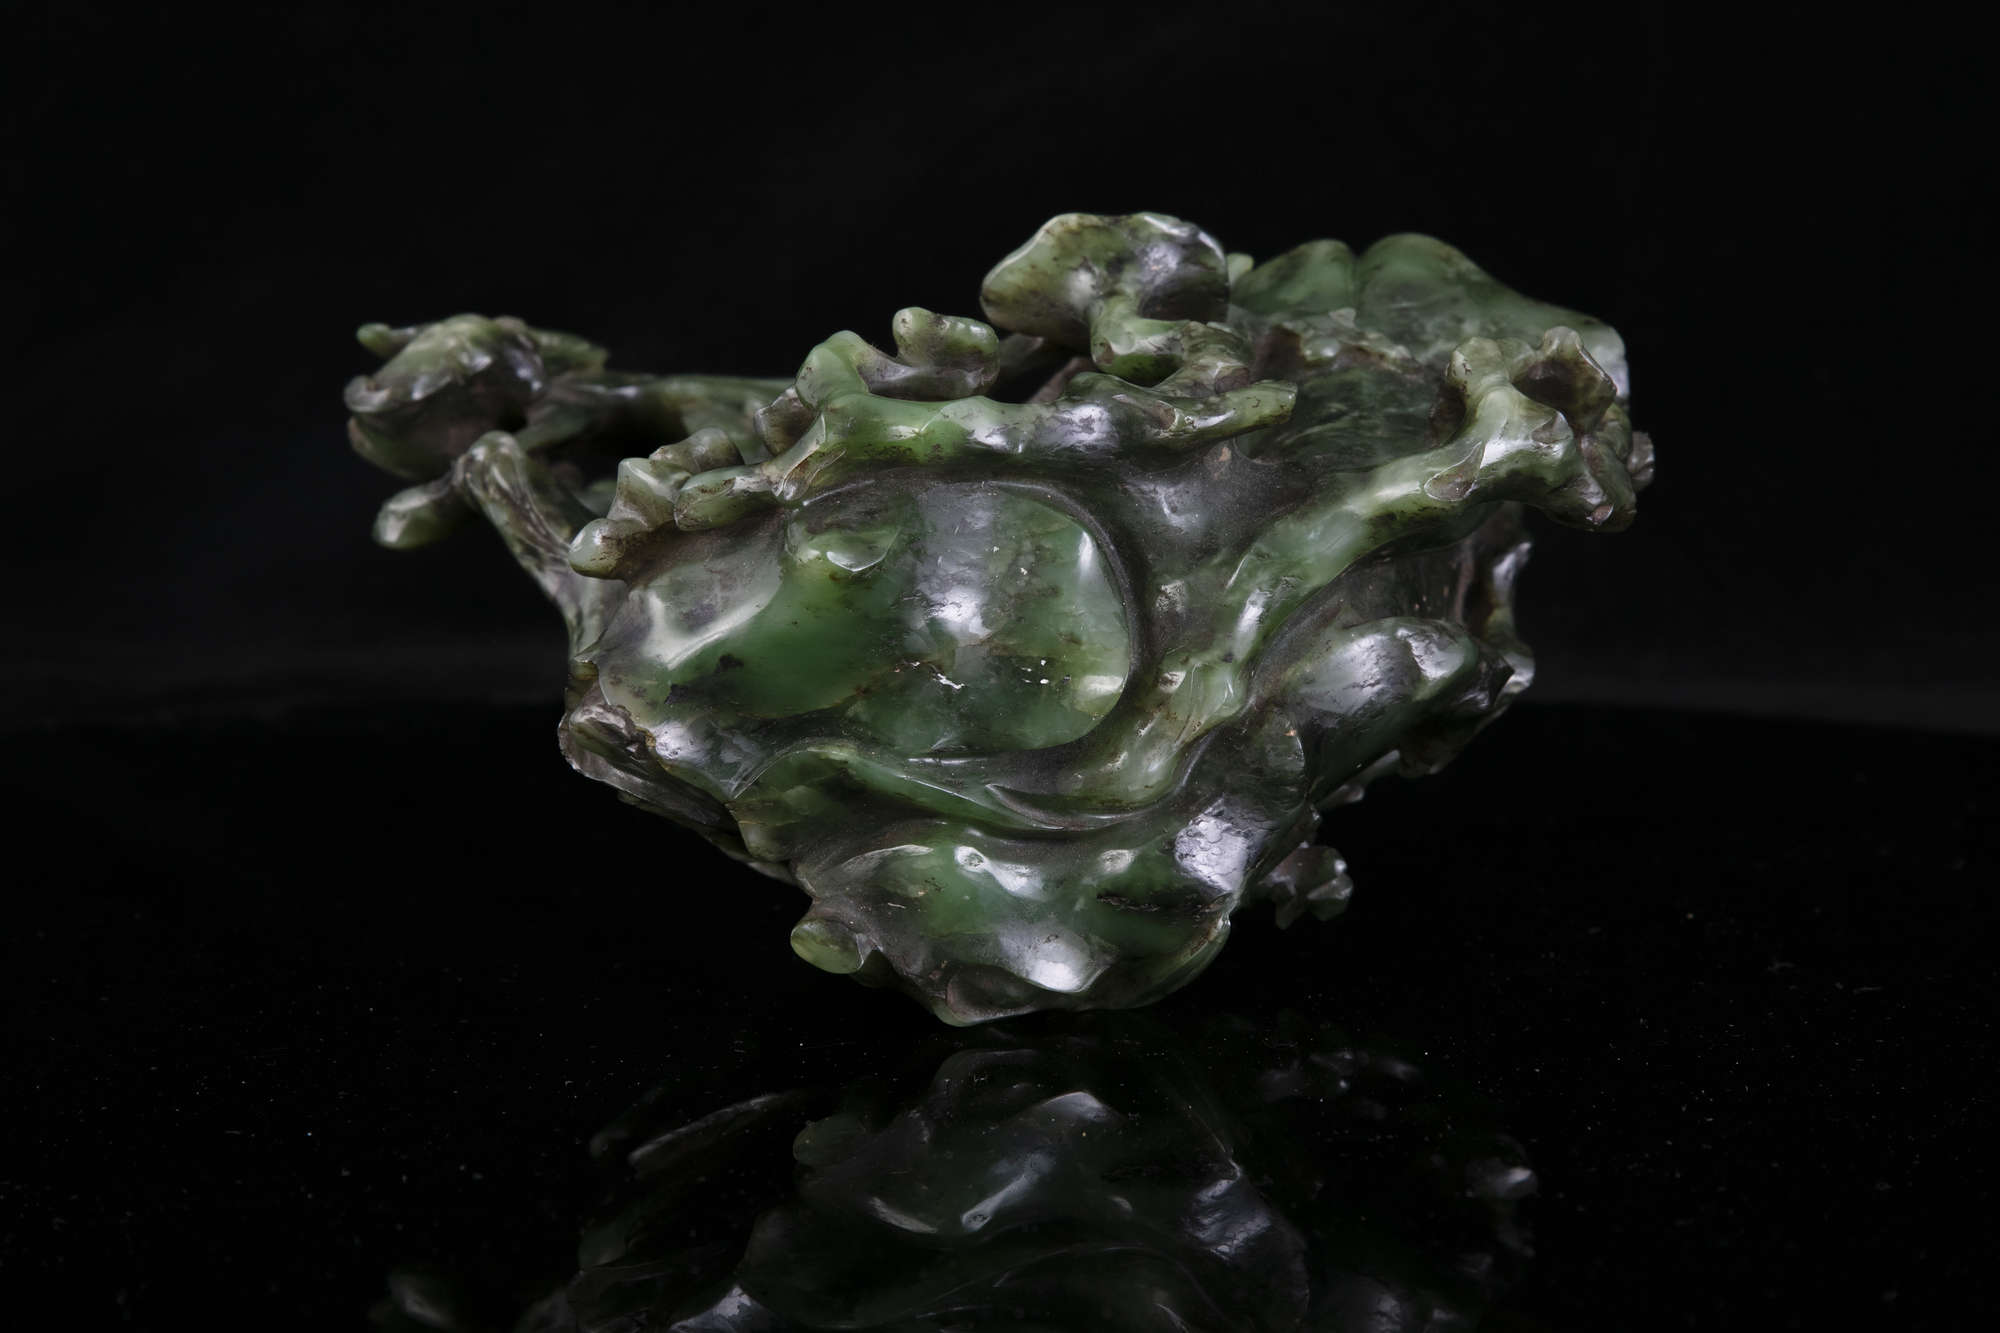 AN HIBISCUS SHAPED SPINACH JADE DOUBLE VASE China, Qing Dynasty, 19th centur Carved in a green stone - Image 41 of 45